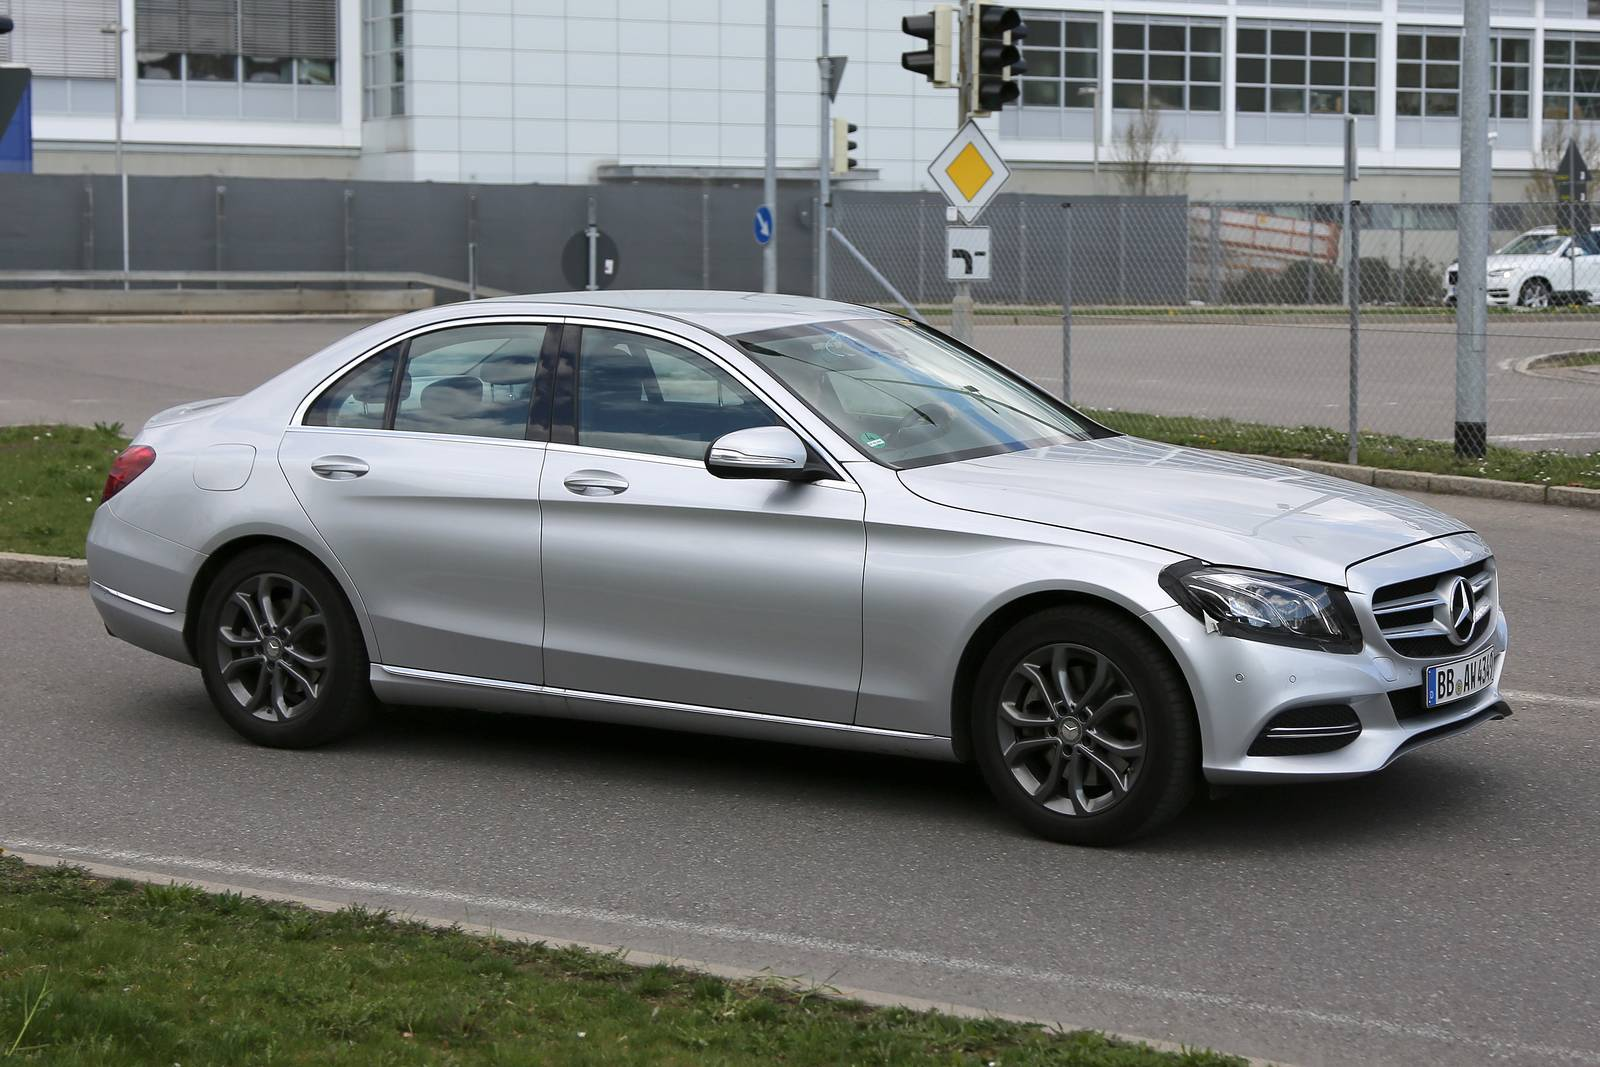 2018 mercedes benz c class facelift spy shots gtspirit for Benz mercedes c class